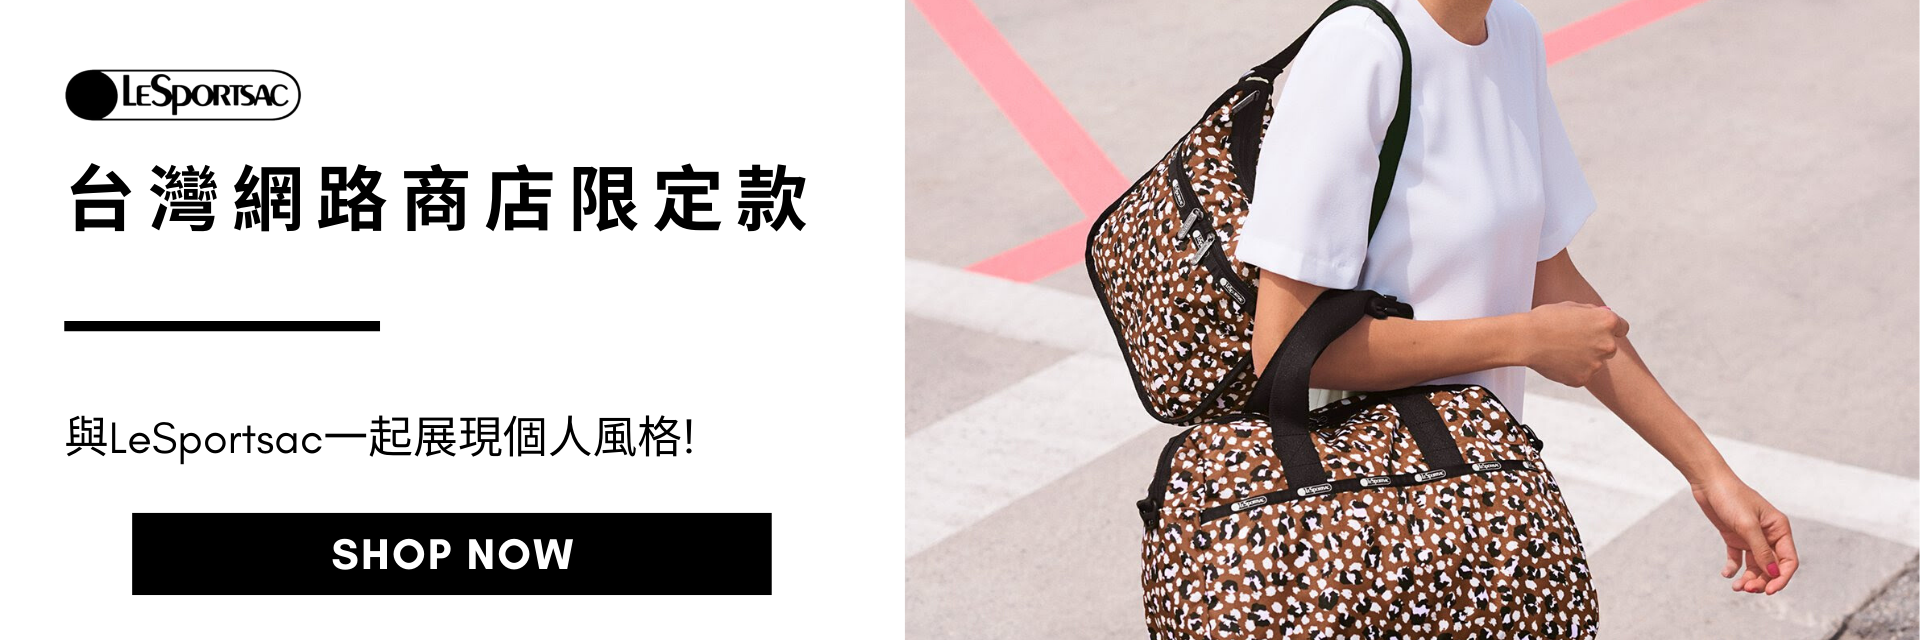 lesportsac online exclusive 網路商店限定